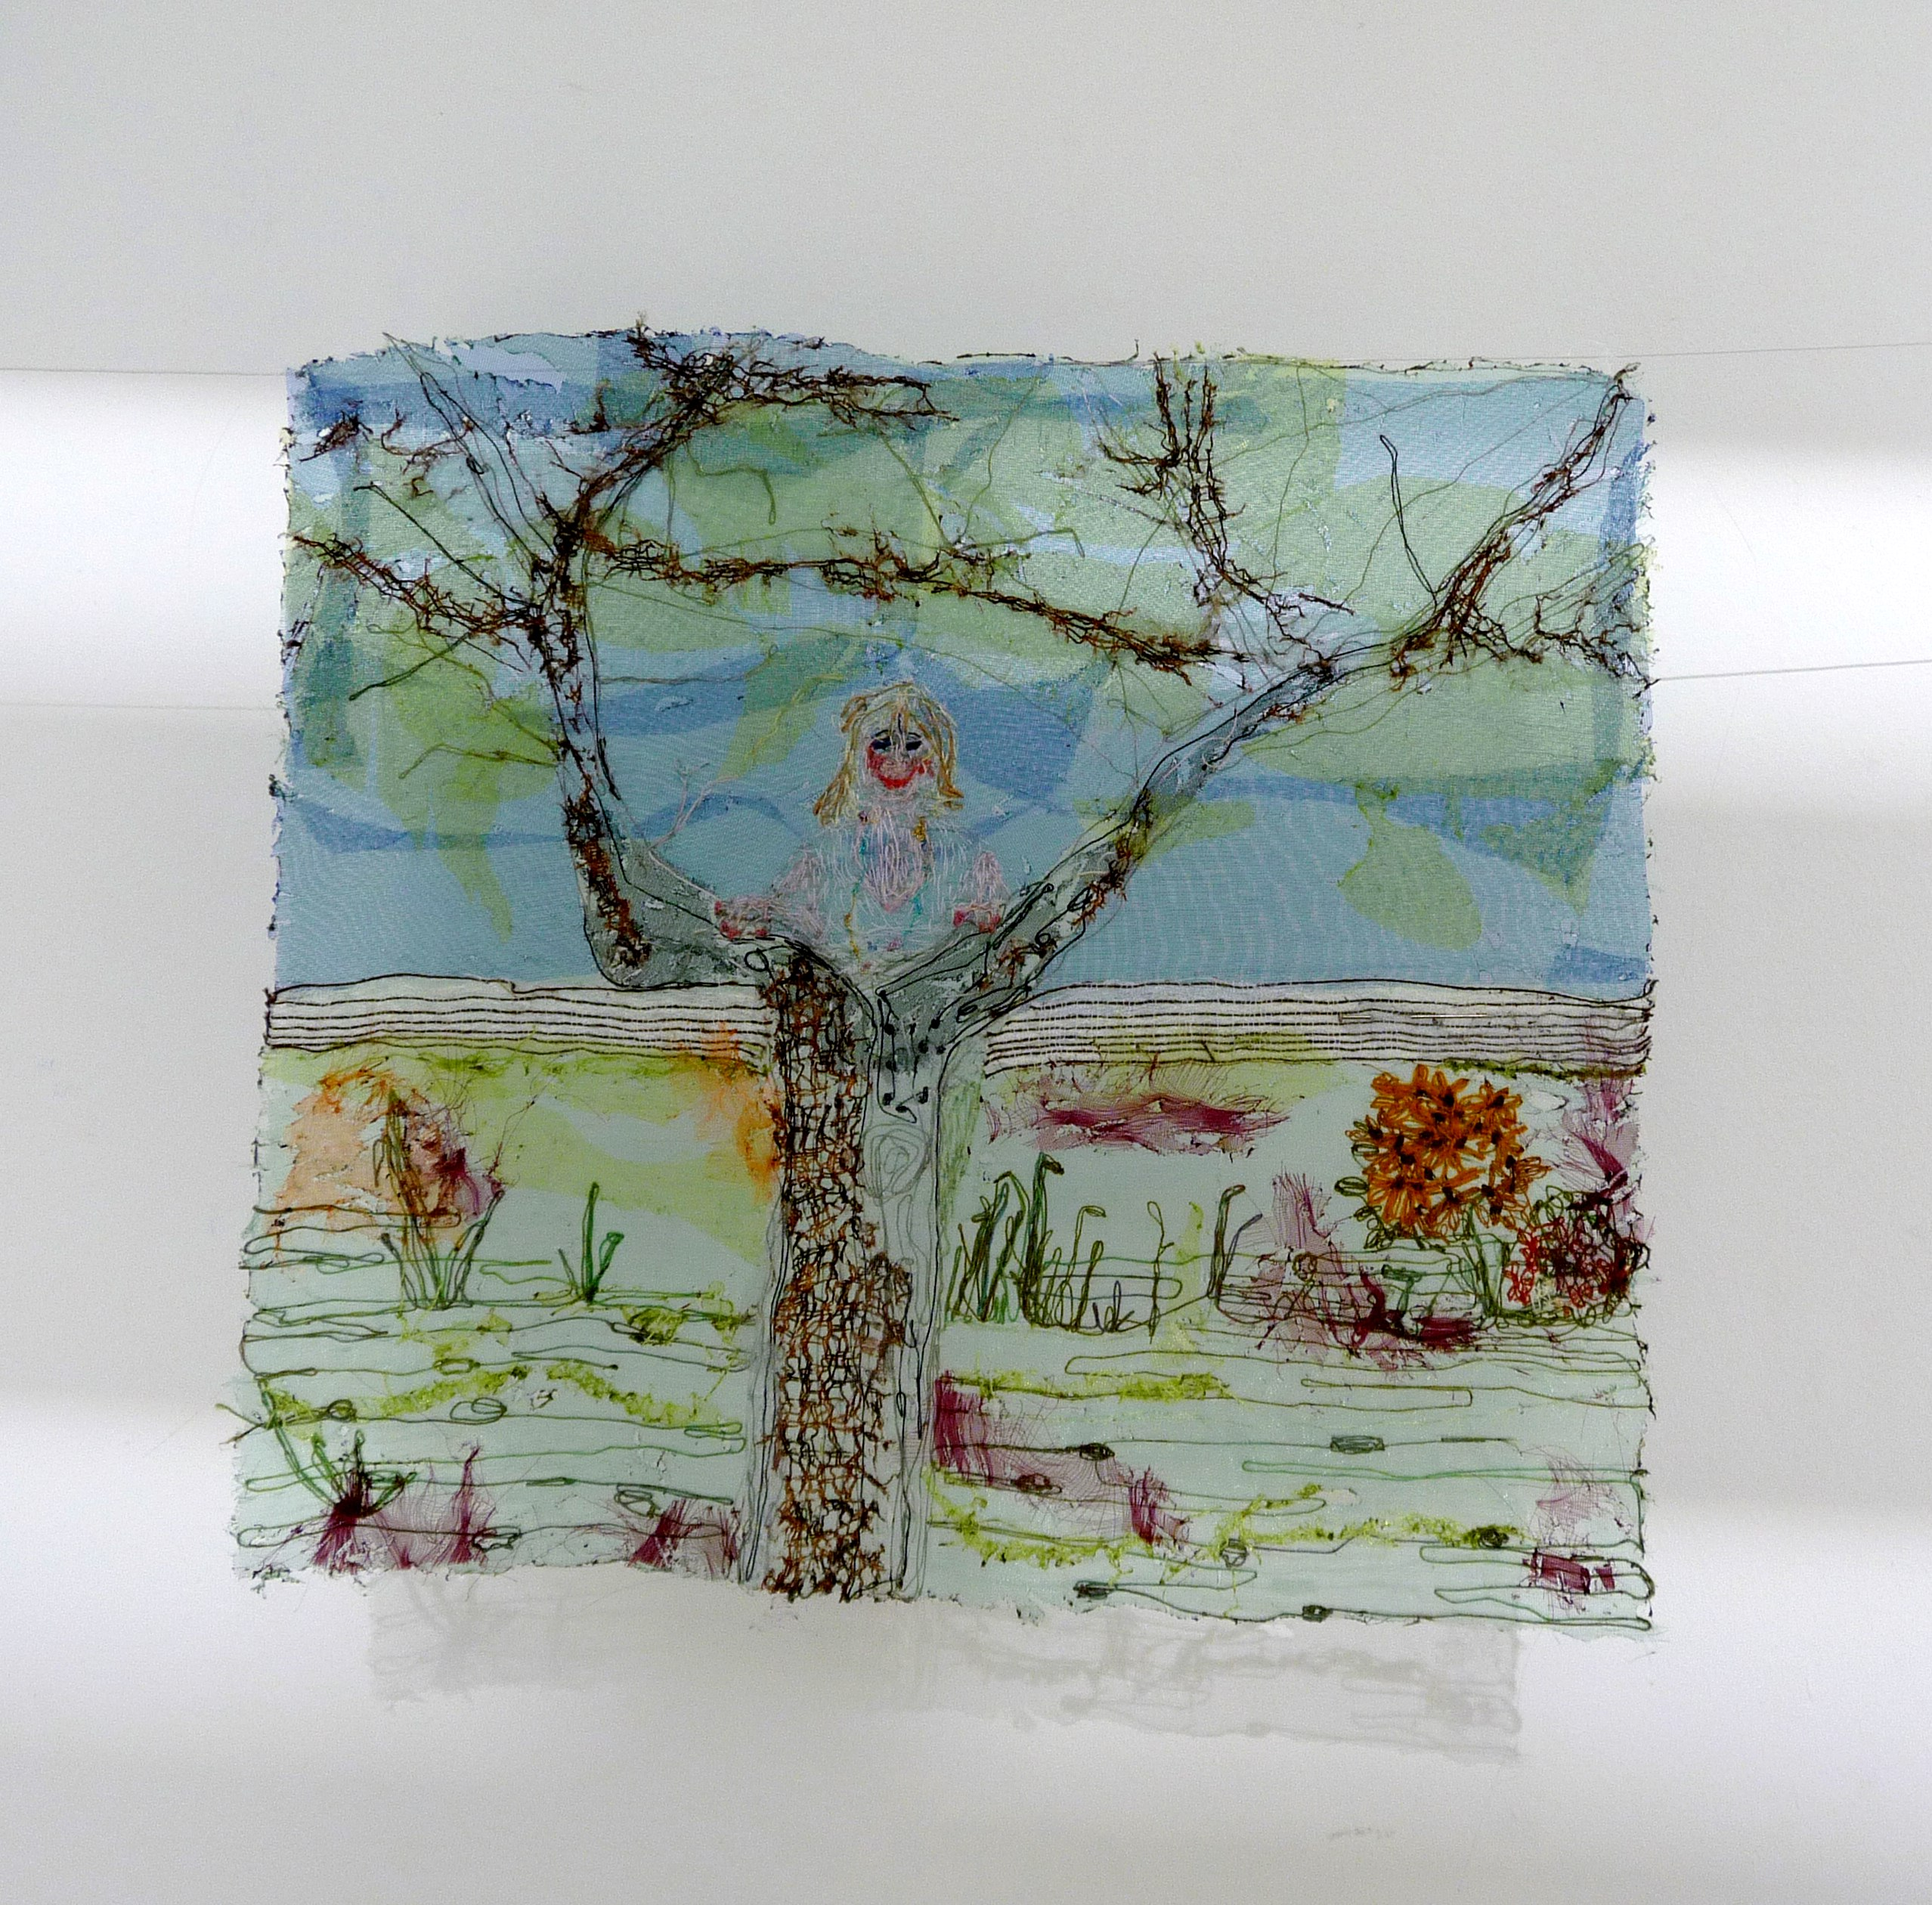 THE FAMILY TREE by Yvonne Deegan, soldering and hand embroidery